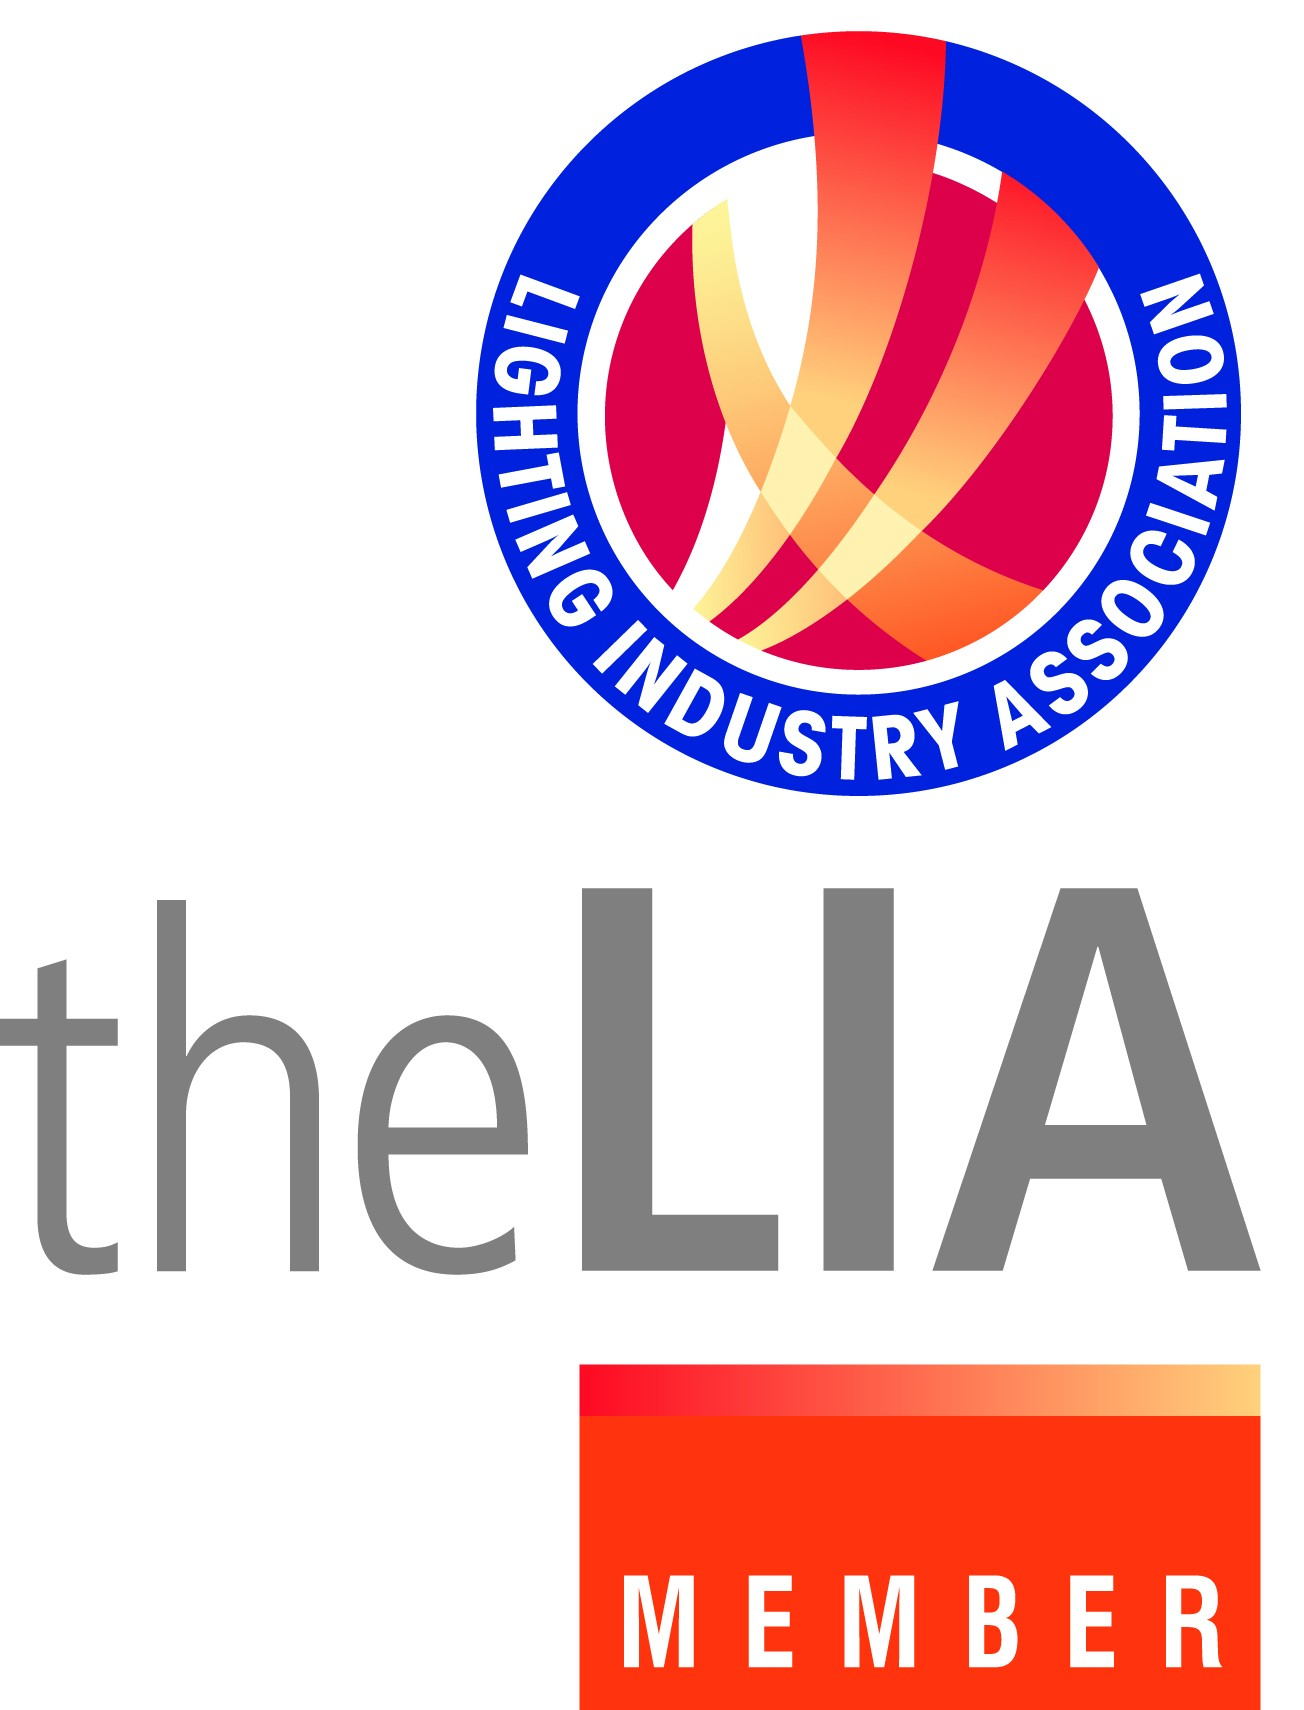 We are now a member of the Lighting Industry Association